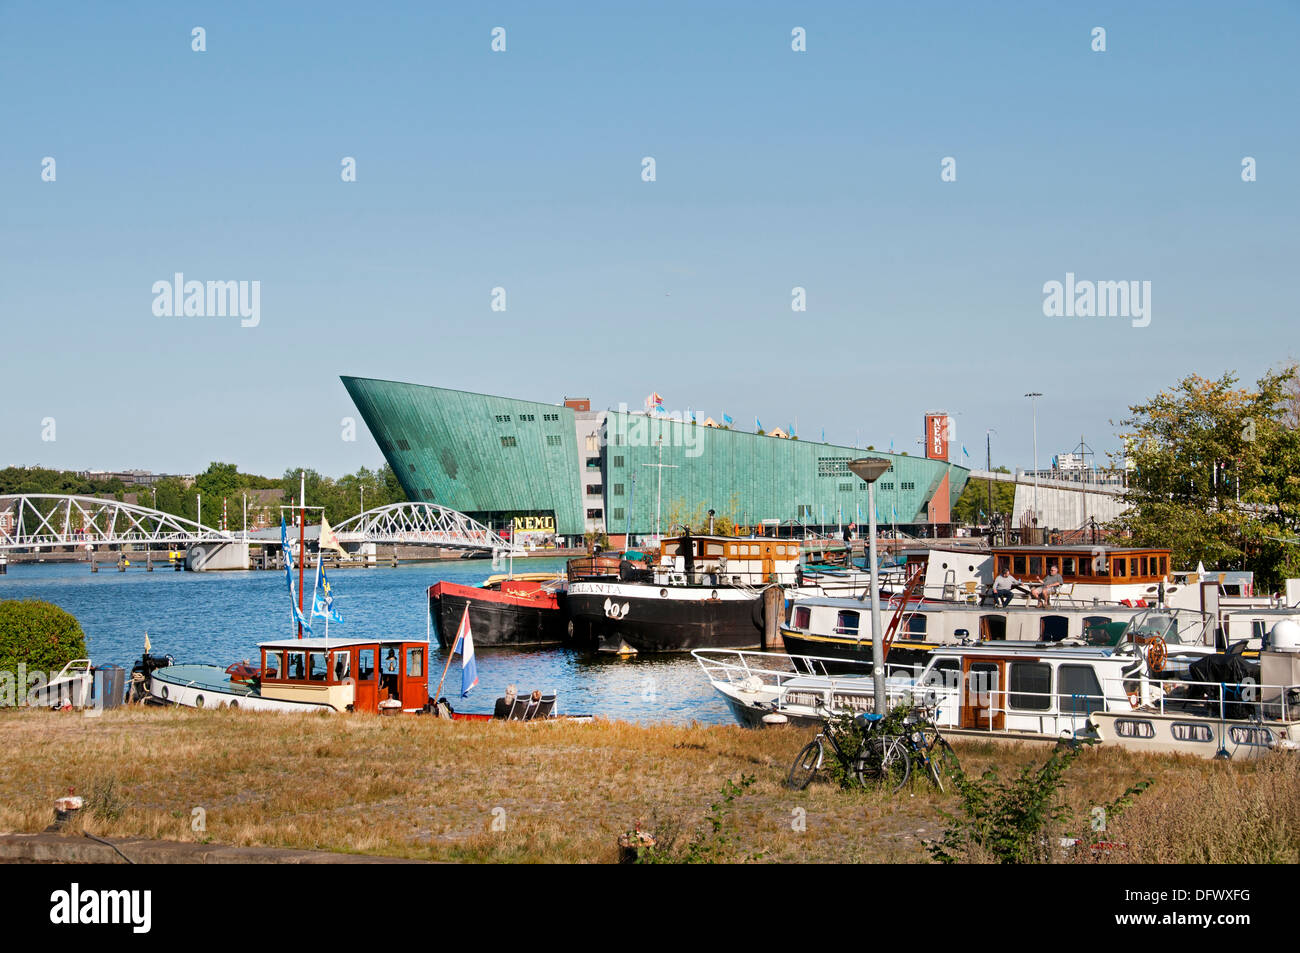 Science museum Nemo at the IJ Amsterdam Netherlands - Stock Image